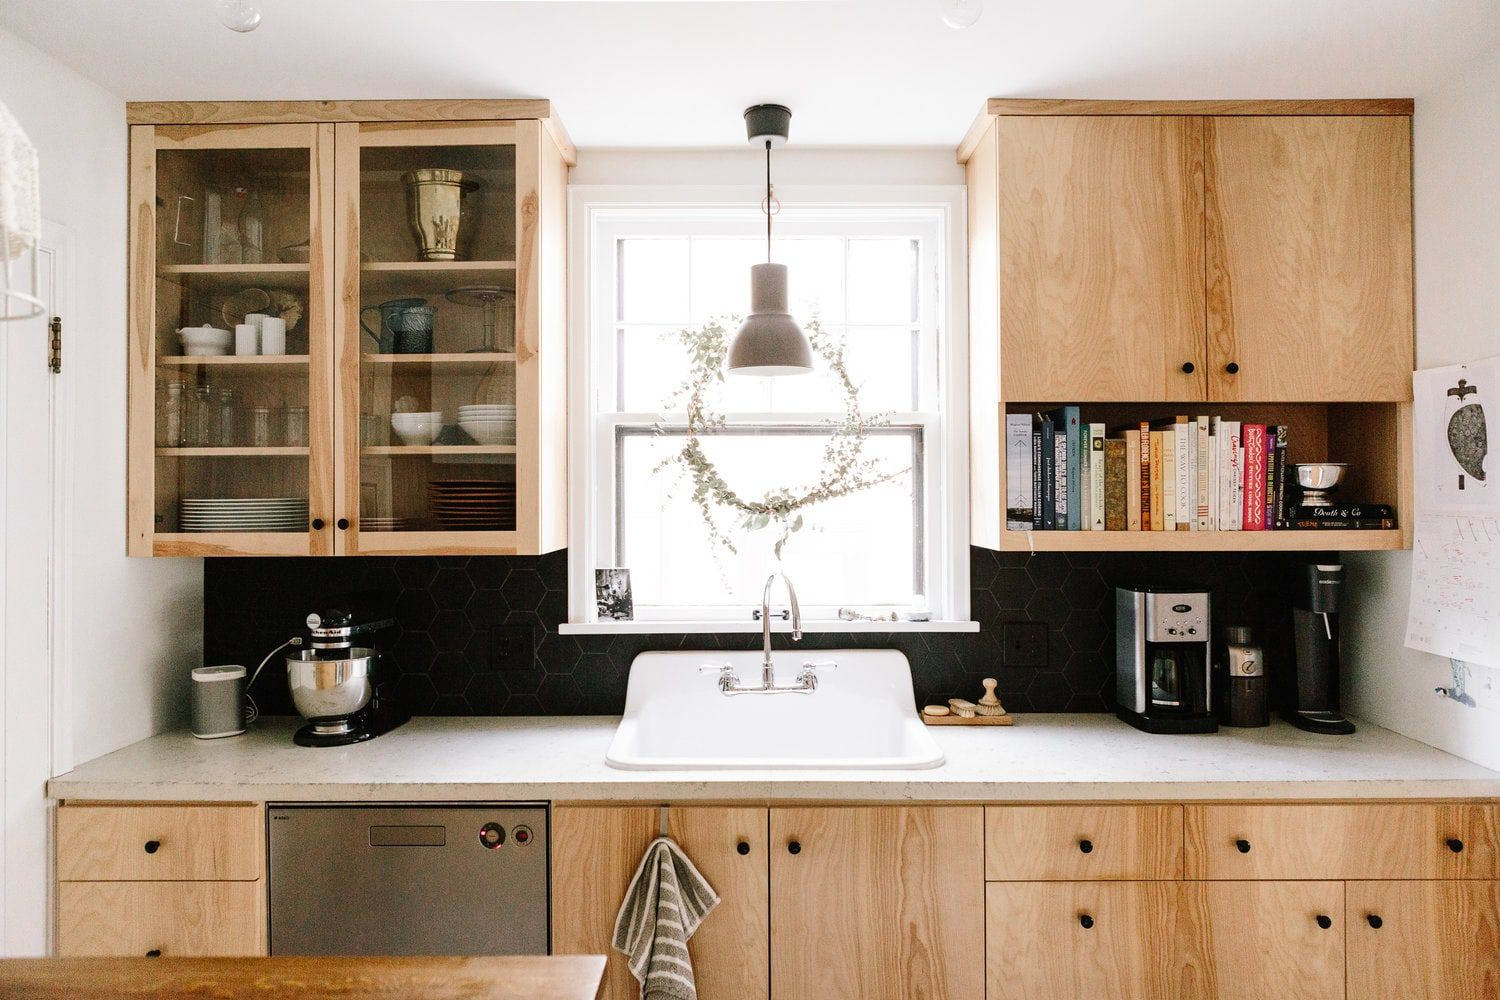 The Best Inexpensive Kitchen Cabinets Designers Swear By In 2020 Inexpensive Kitchen Cabinets Kitchen Cabinets Kitchen Design Best inexpensive kitchen cabinets